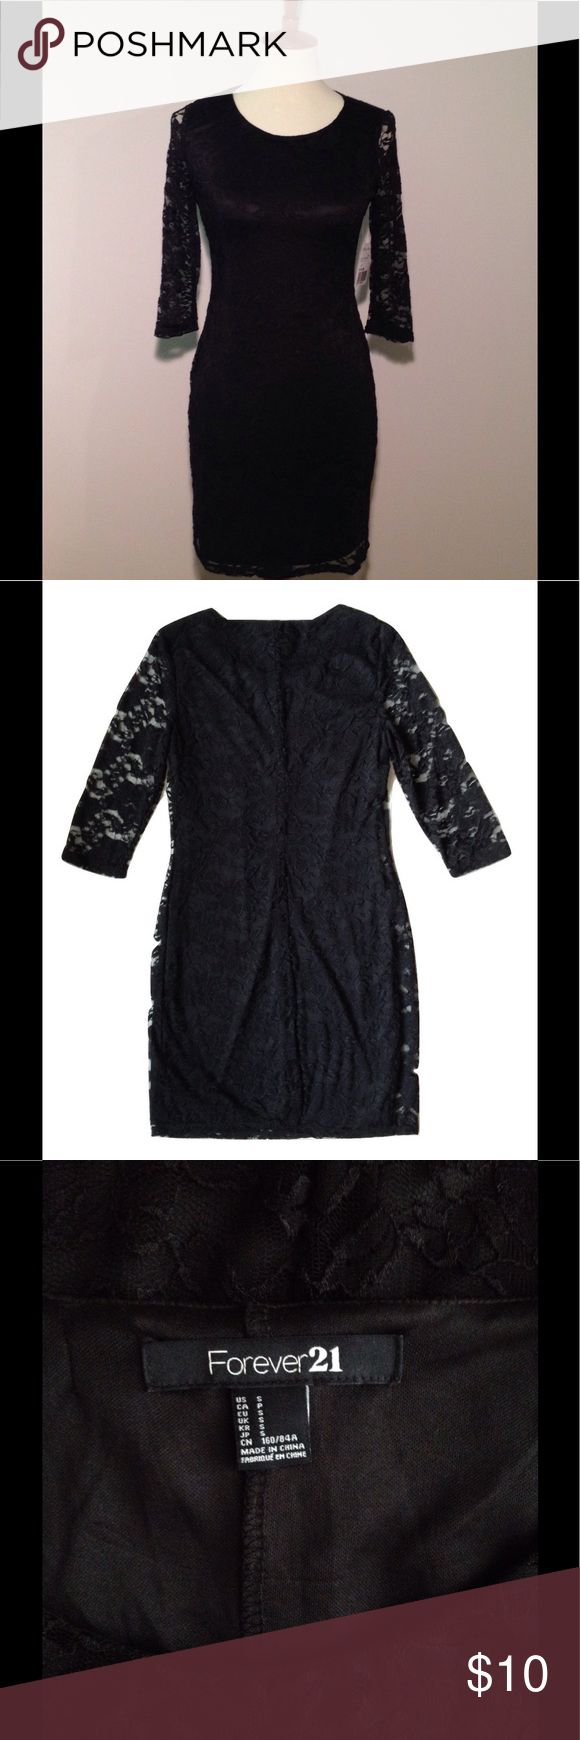 """Forever 21 little black lace dress Forever 21 little black lace dress NWT womens small. The lining is polyester. The lace over the lining is nylon/spandex. New with tags. Measurements: body length (down center of back): 32"""" underarm seam to underarm seam: 15"""" sleeve from shoulder seam: 15"""" shoulder seam to shoulder seam: 14"""" waist flat across: 14"""" Forever 21 Dresses Mini"""